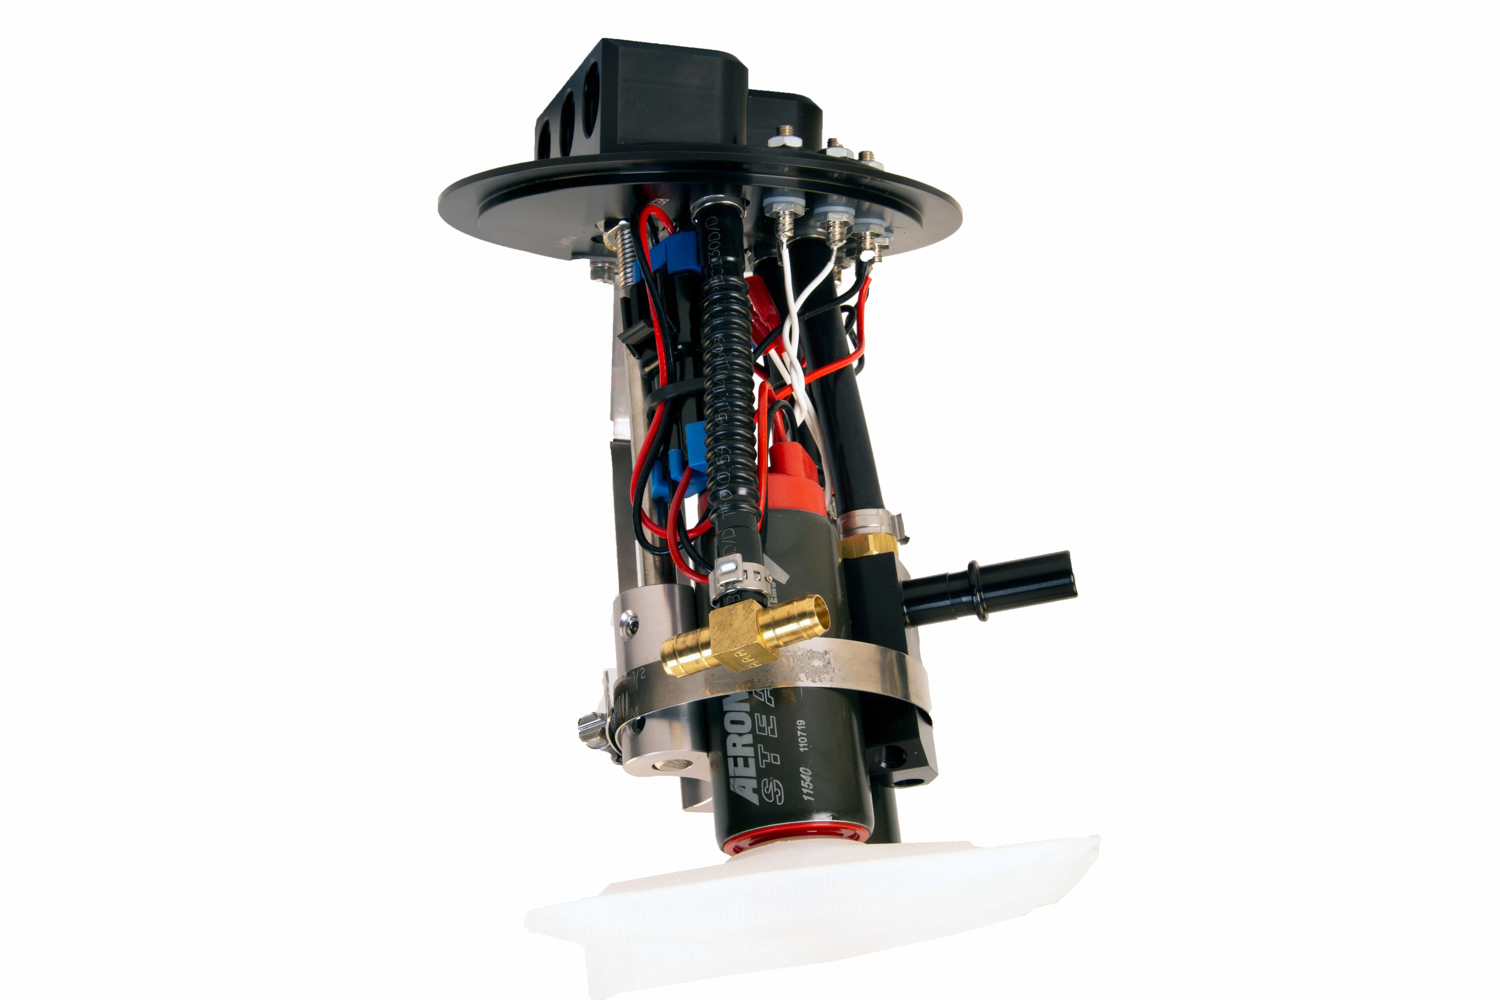 Aeromotive 18039 Fuel Pump, 340 Stealth, Electric, In-Tank, 340 lph at 90 psi, Dual Pump, Center Filter Sock Inlet, 8 AN Female O-Ring Outlet, Install Kit, Gas, Ford Mustang 2011-17, Kit